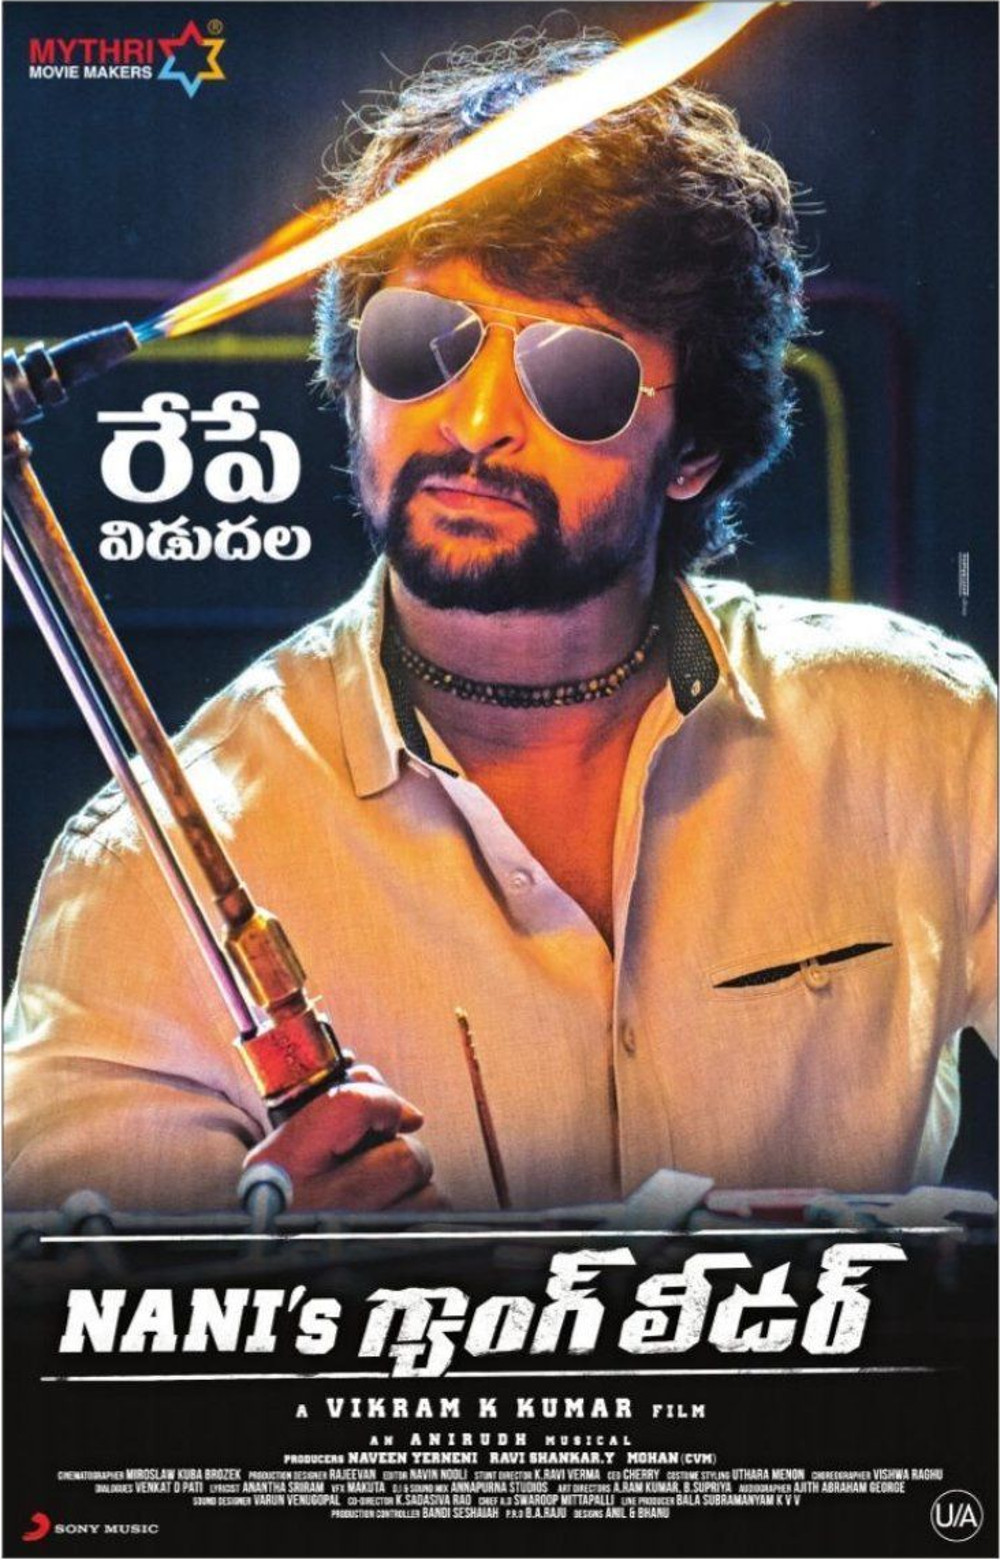 Nani Gang Leader Movie Releasing Tomorrow Poster HD